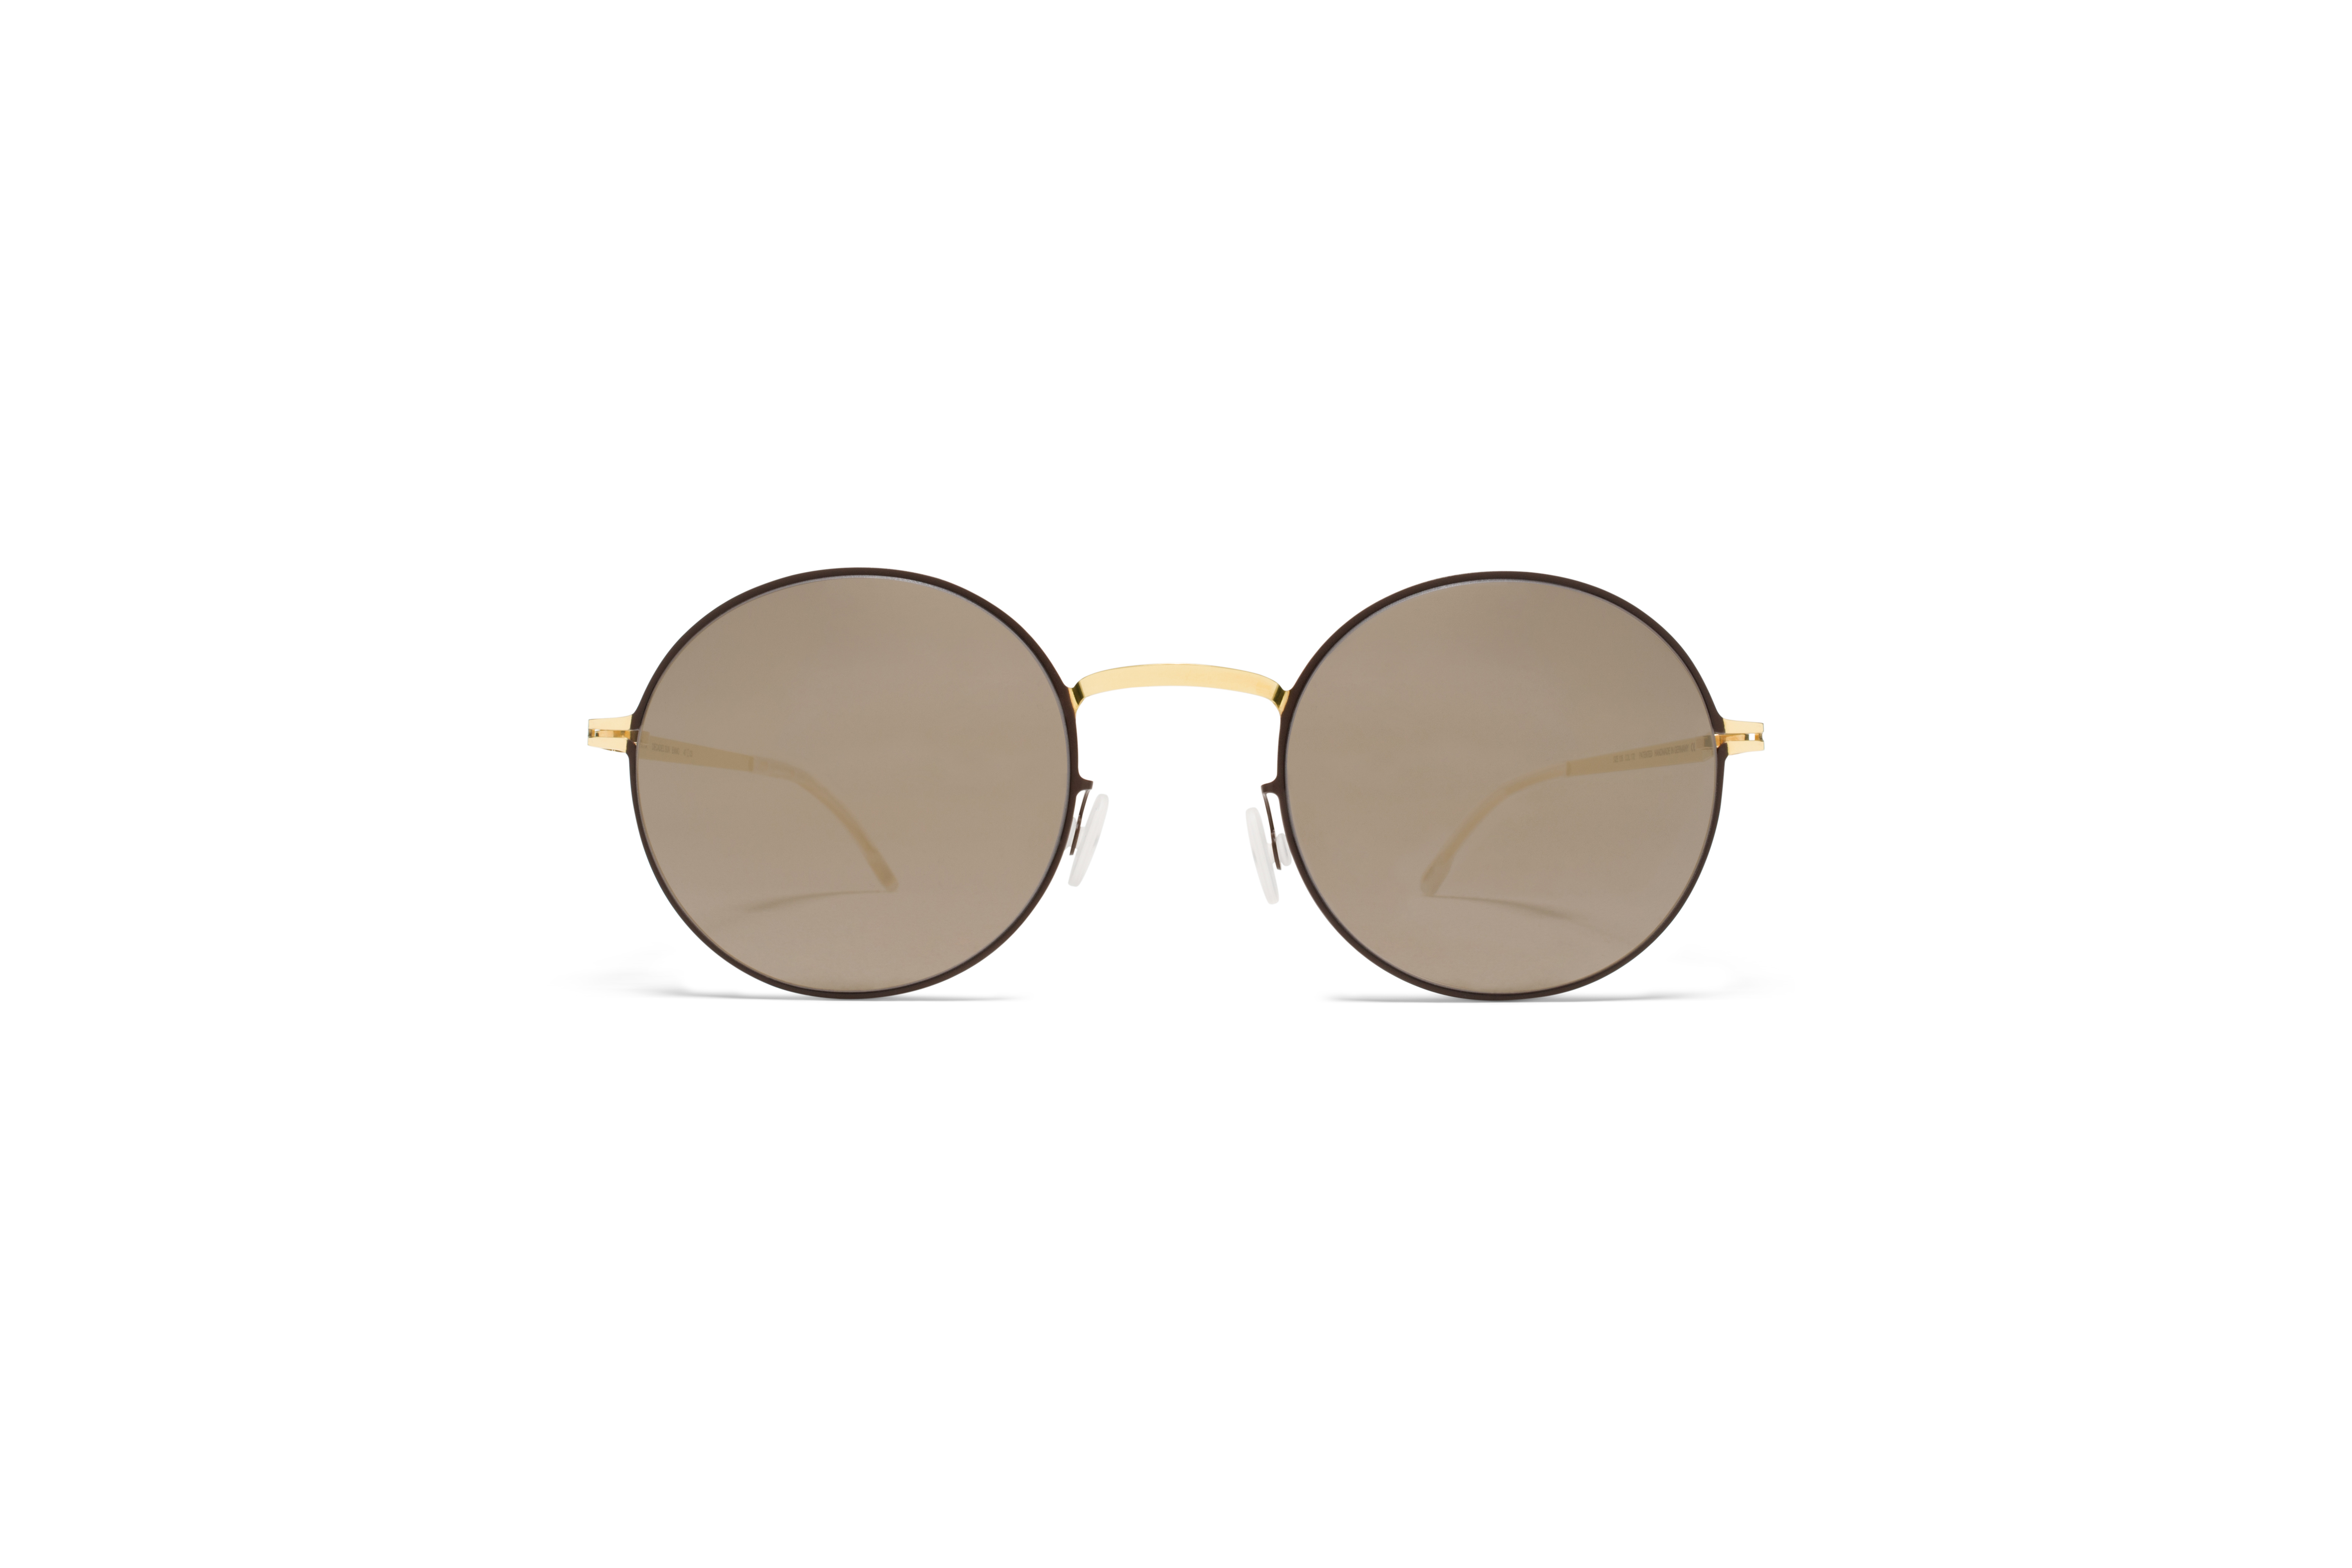 MYKITA Decades Sun Ennio Gold Terra Brilliantgrey5807426a4d879